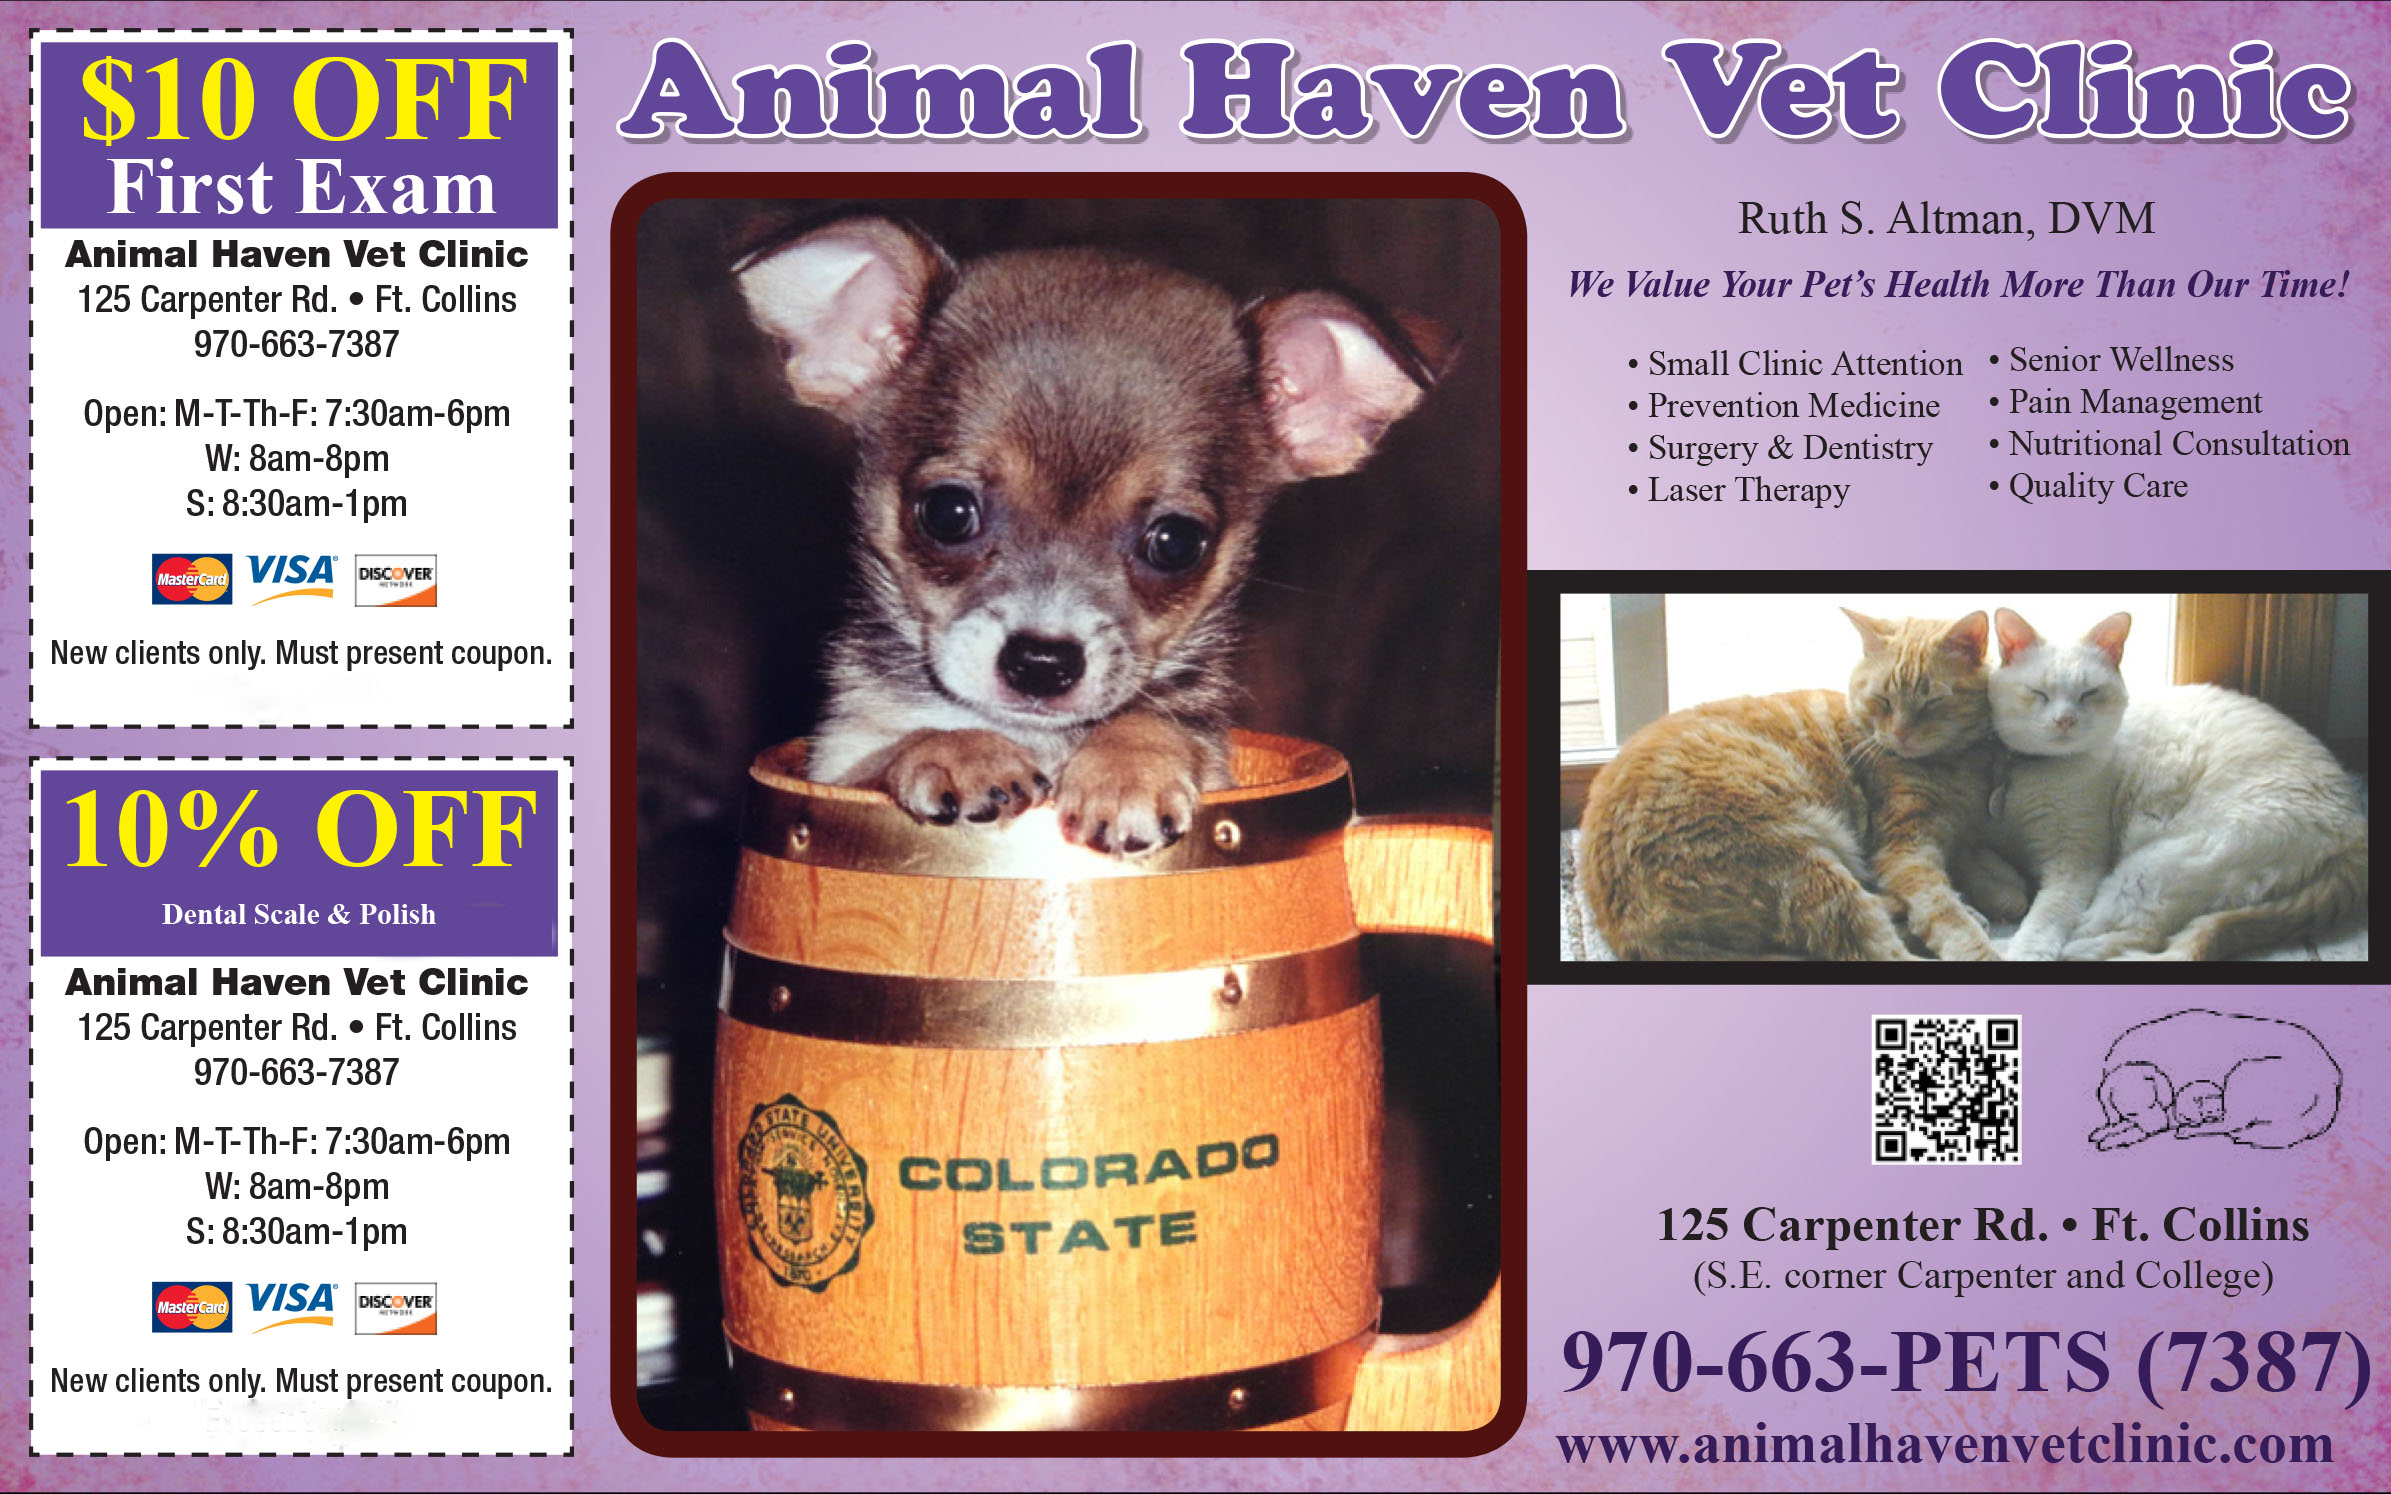 Animal Haven Vet Clinic new client coupon